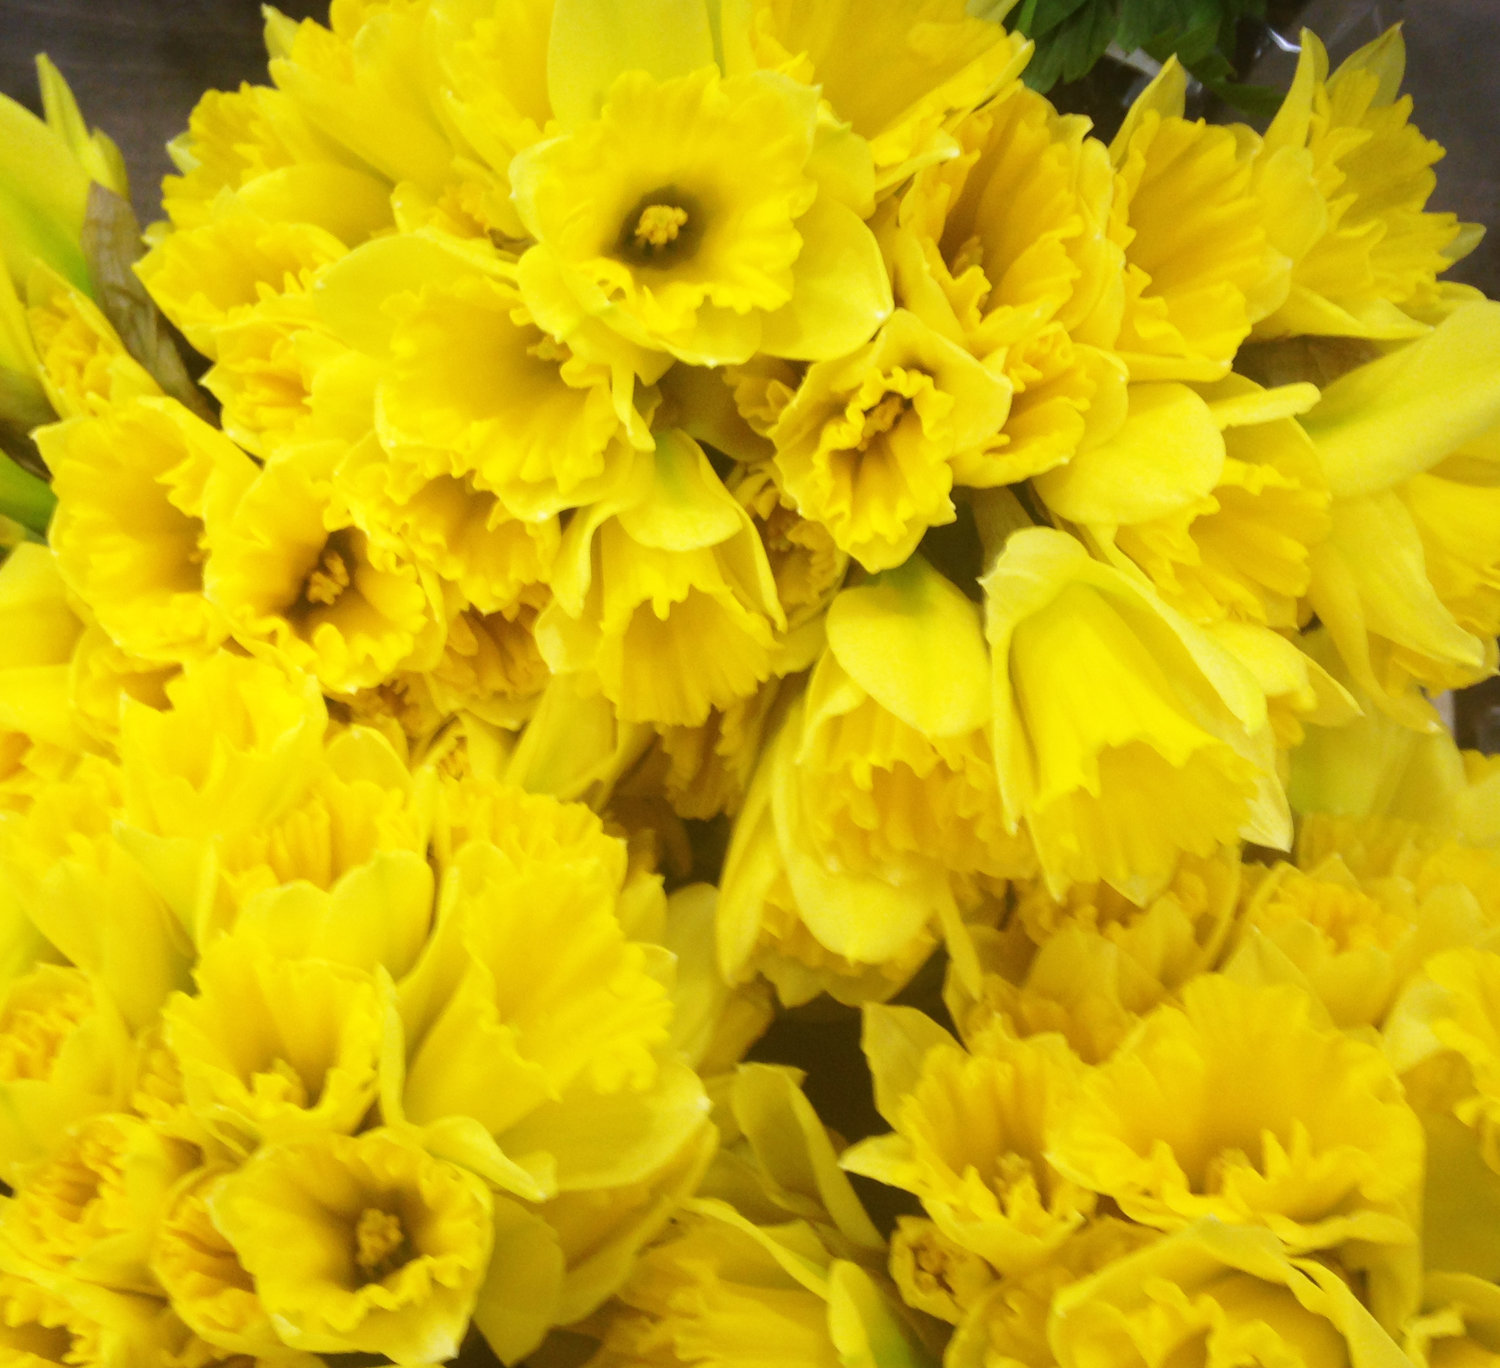 A spray of daffodils, one of the first blooms of spring.